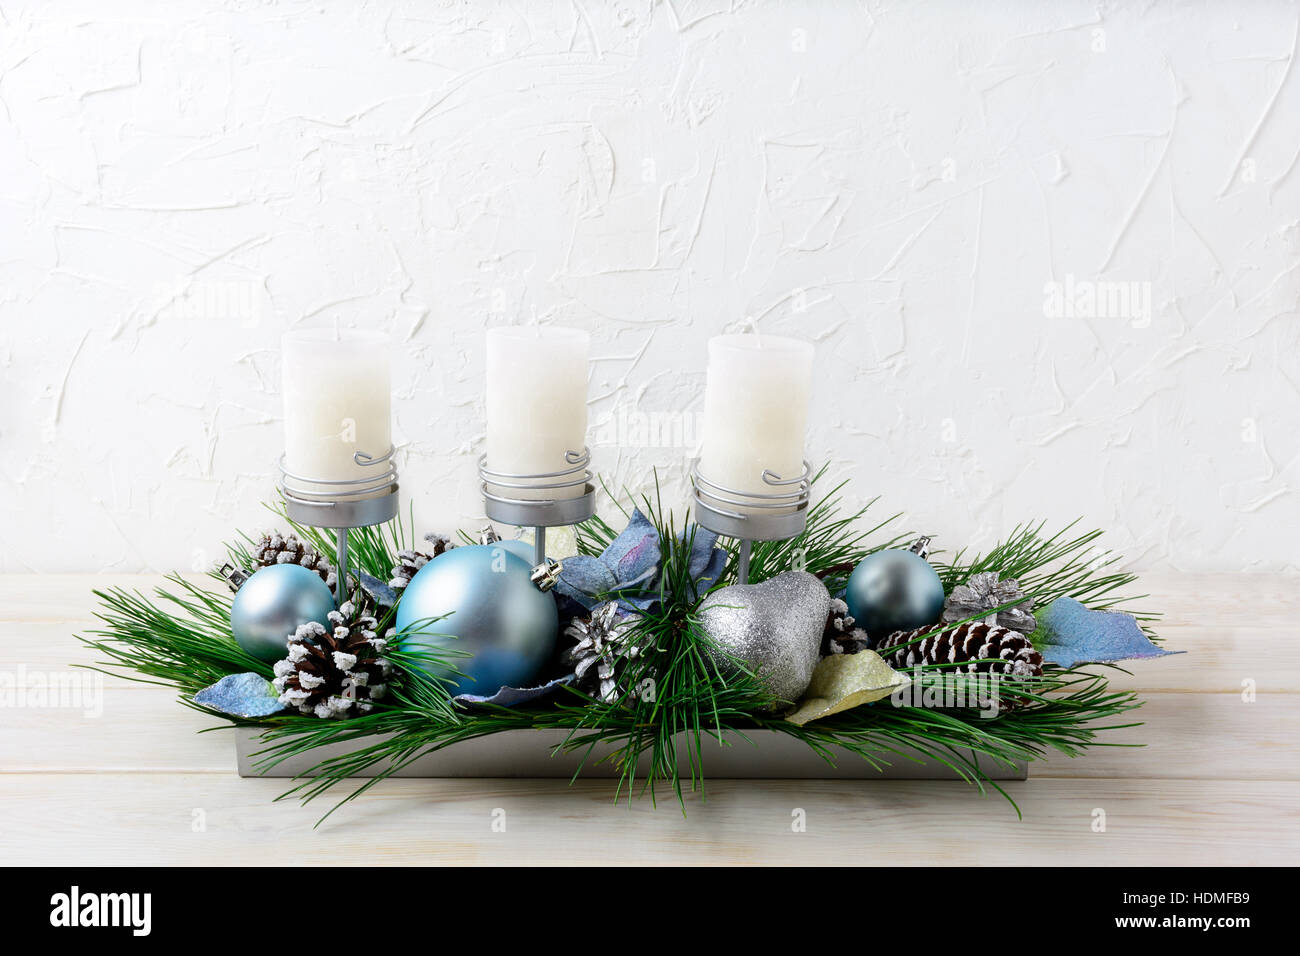 Christmas Table Centerpiece With Three Candles And Blue Ornaments